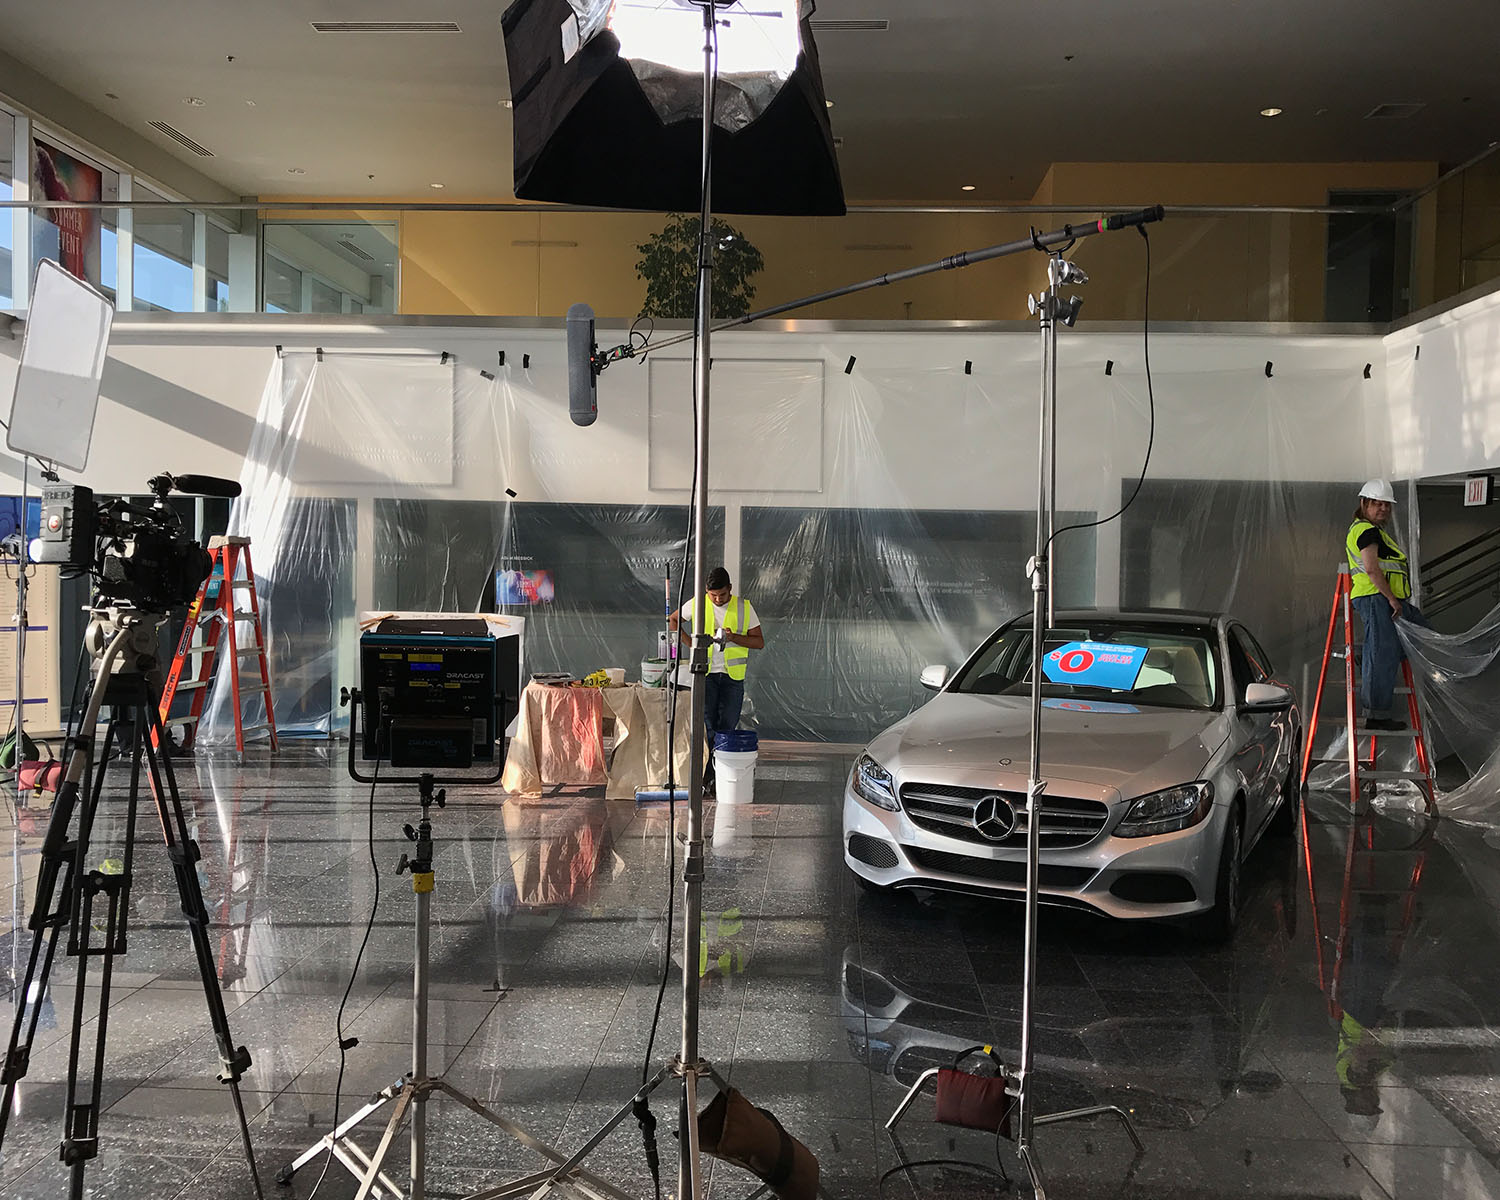 Filming in a car dealership